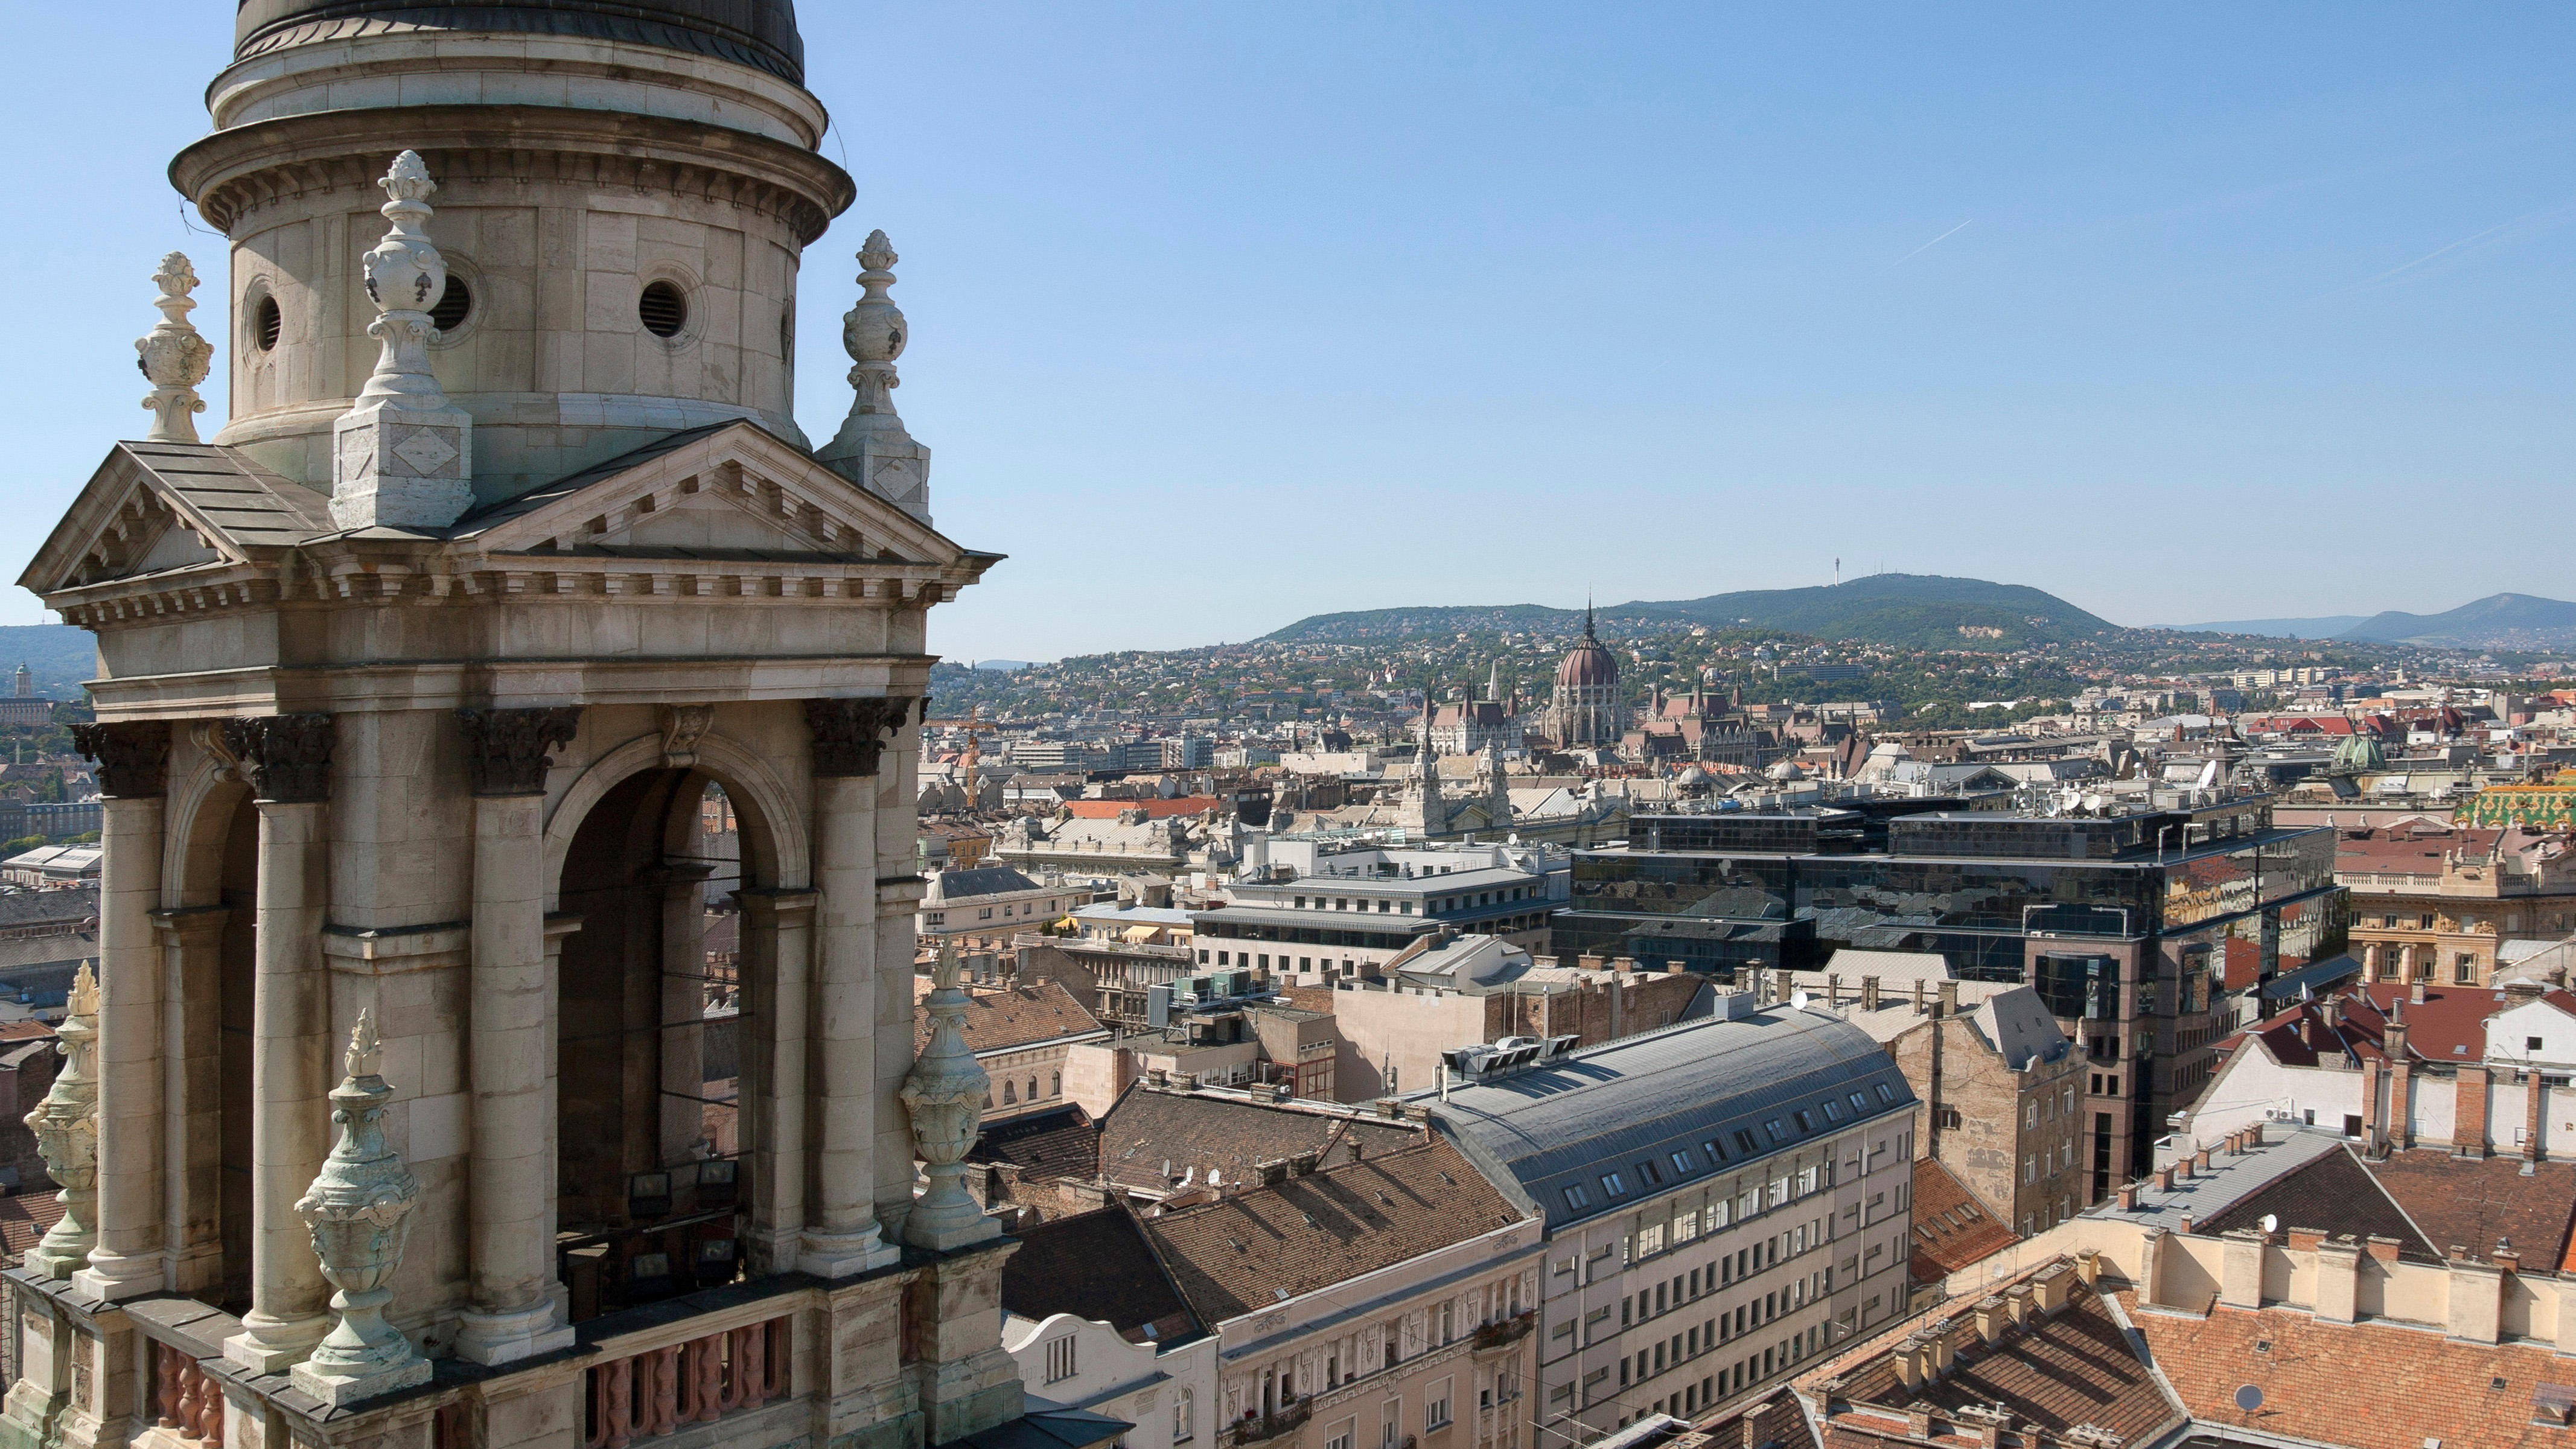 Budapest is brimming with architectural gems